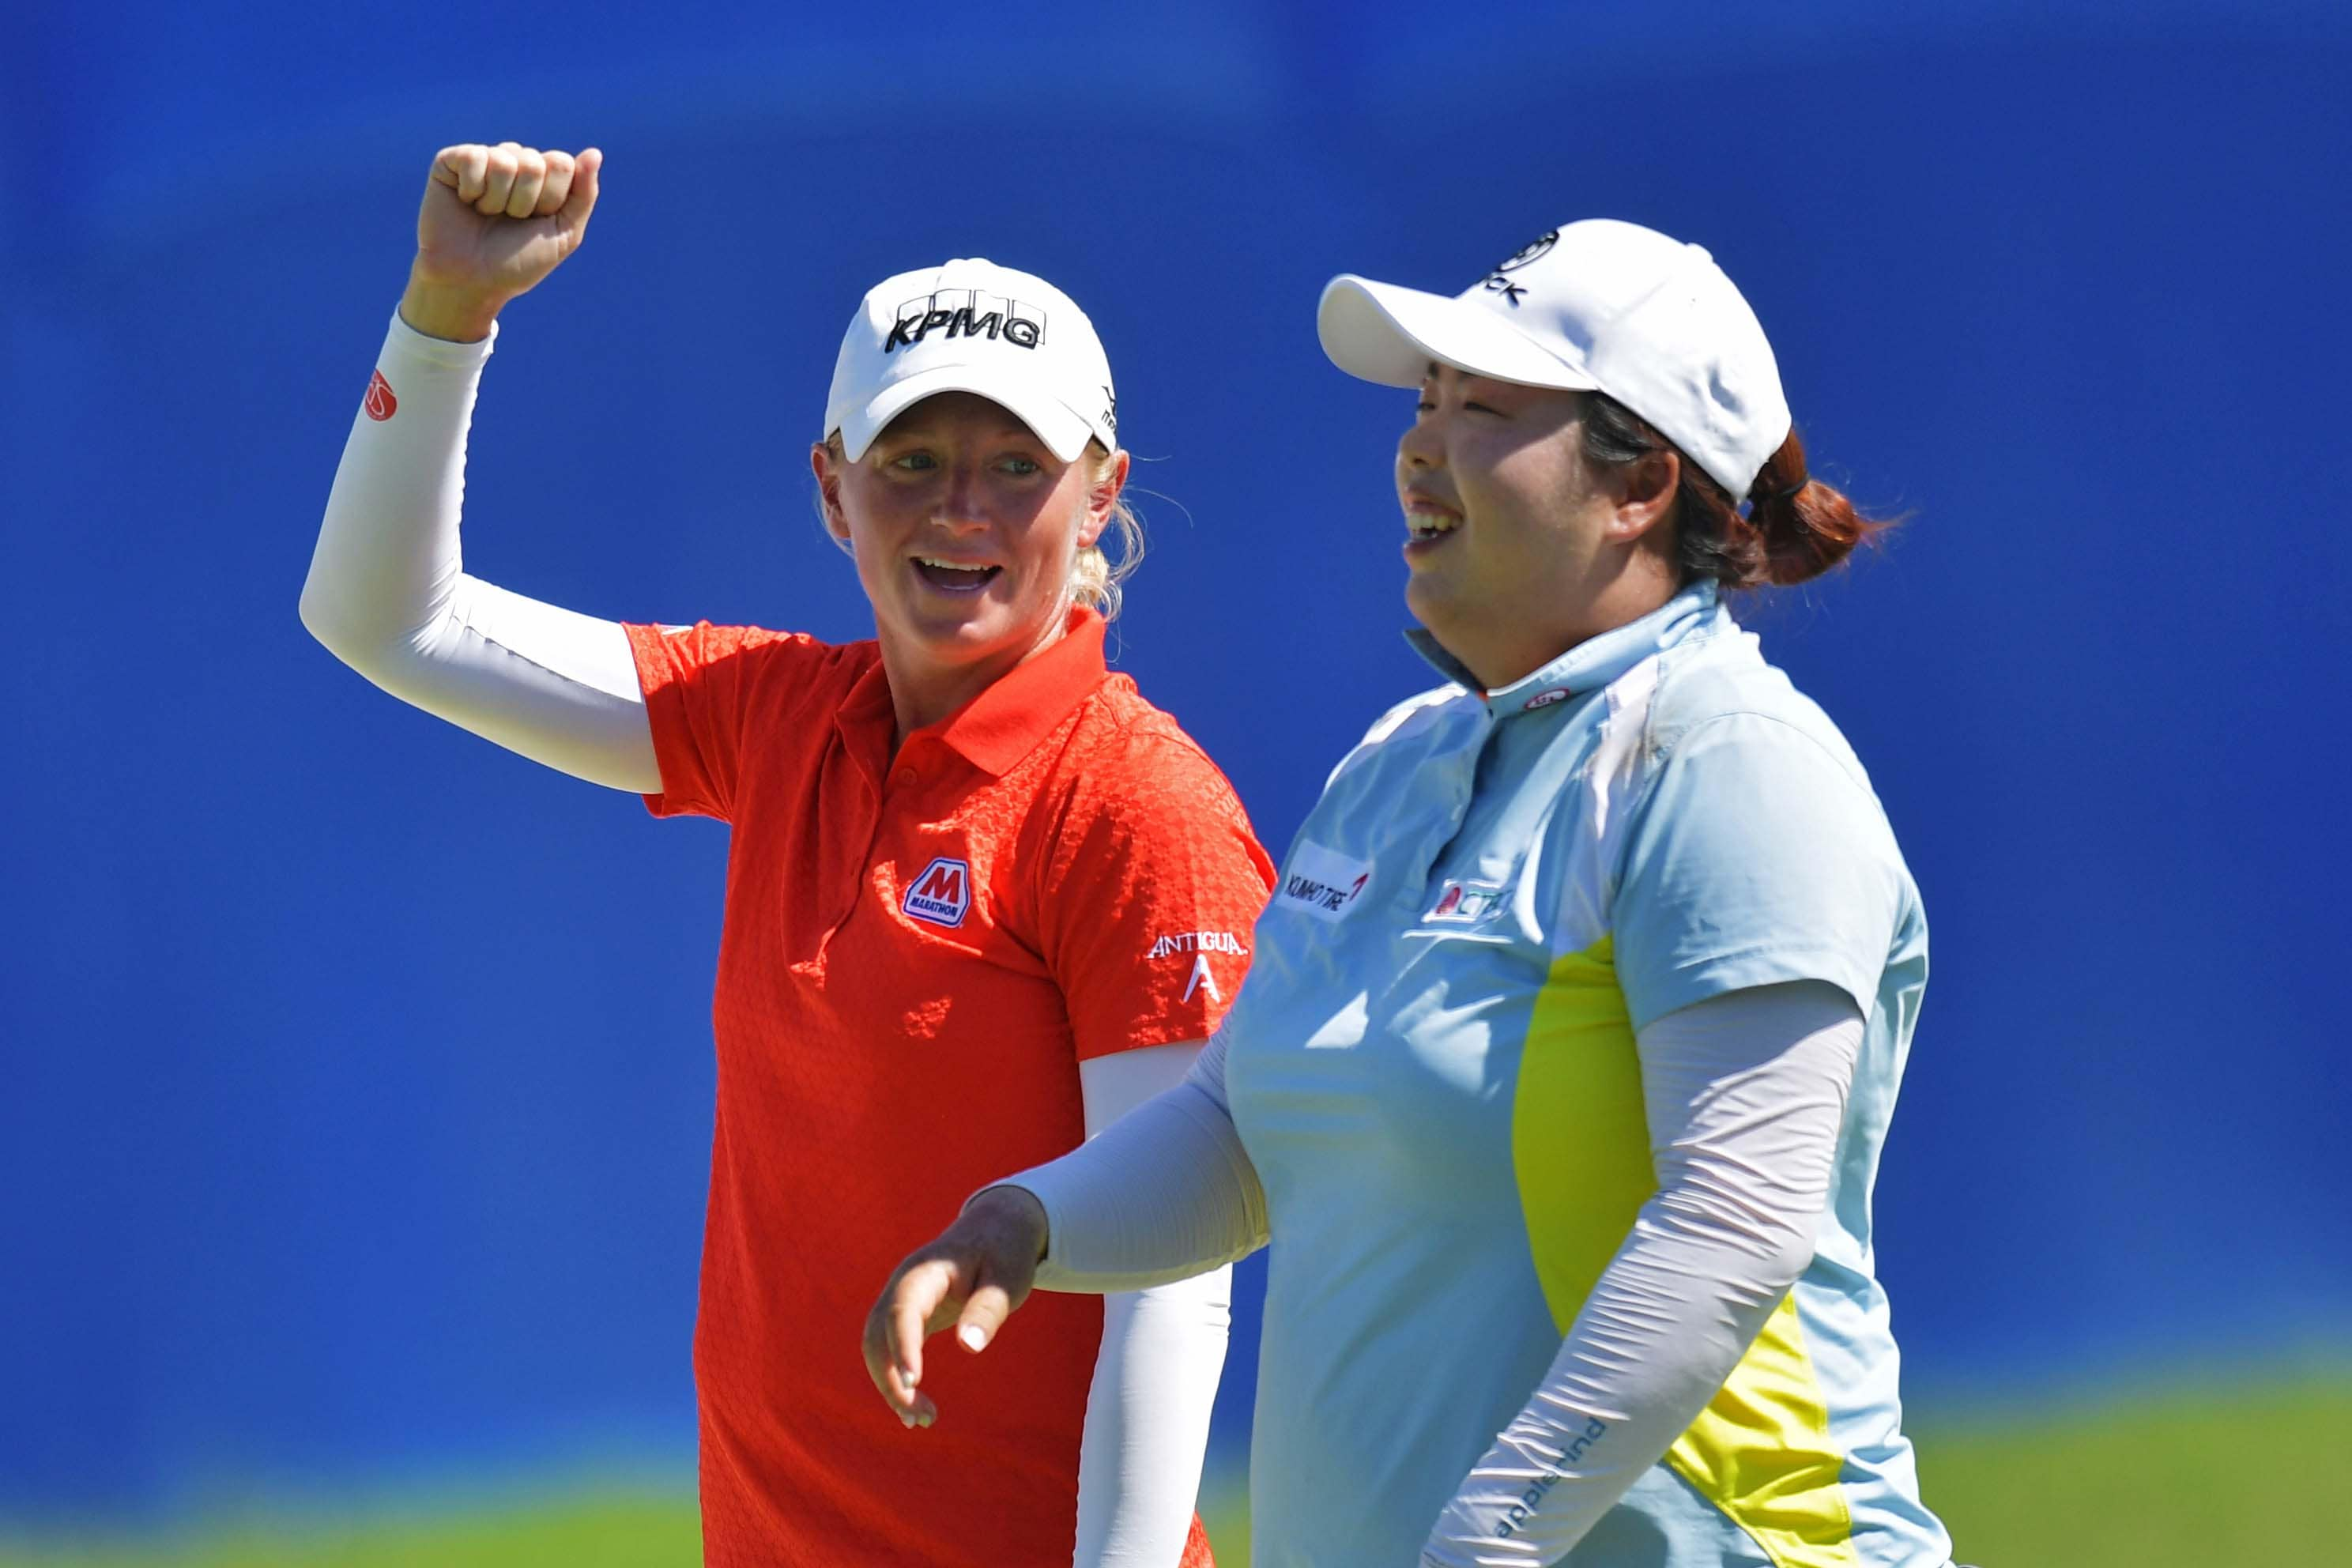 Stacy Lewis and Shanshan Feng